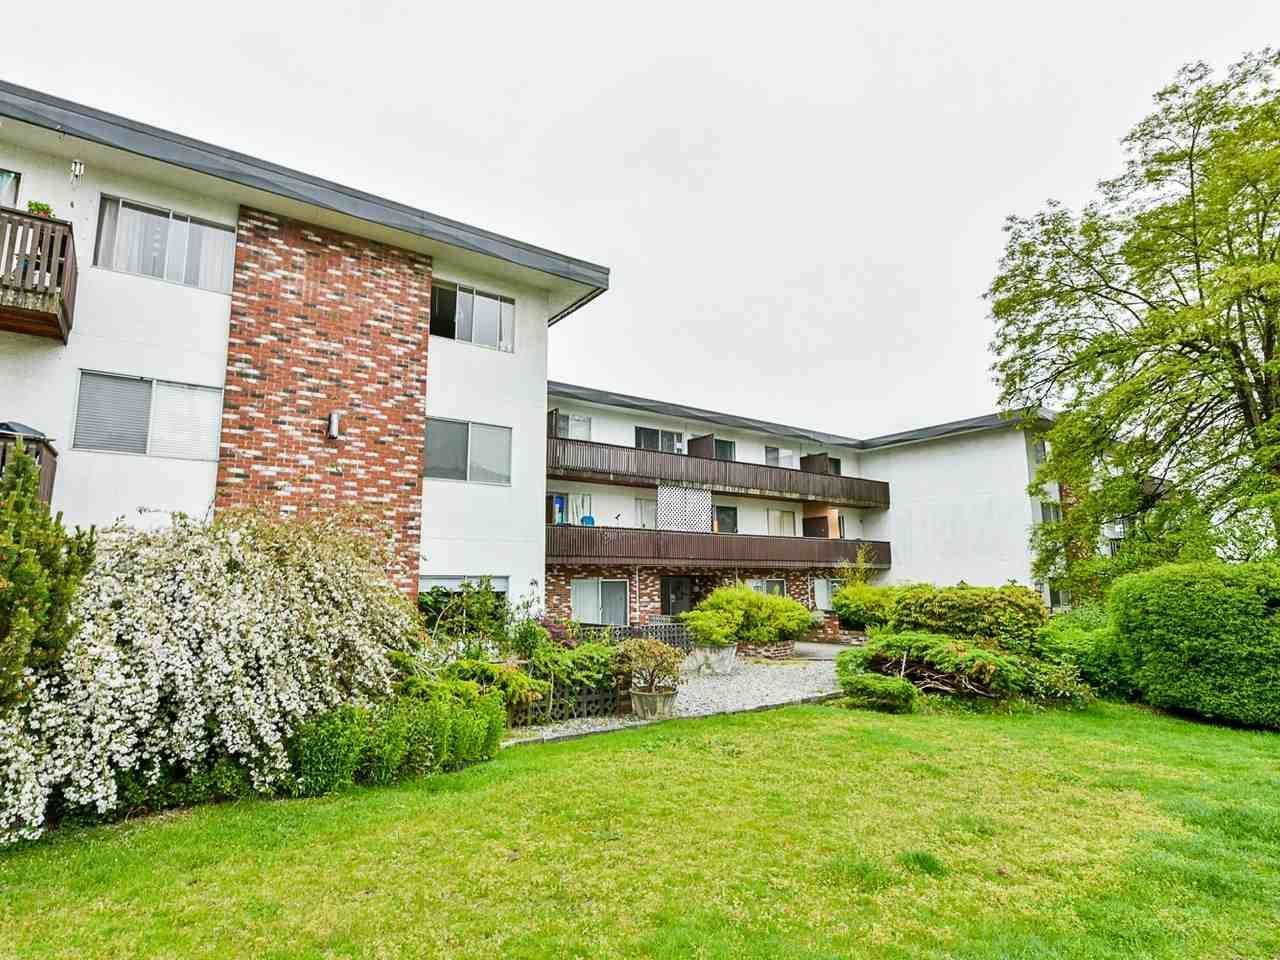 """Main Photo: 103 910 FIFTH Avenue in New Westminster: Uptown NW Condo for sale in """"Grosvenor Court/ Aldercrest Developments Inc."""" : MLS®# R2459937"""